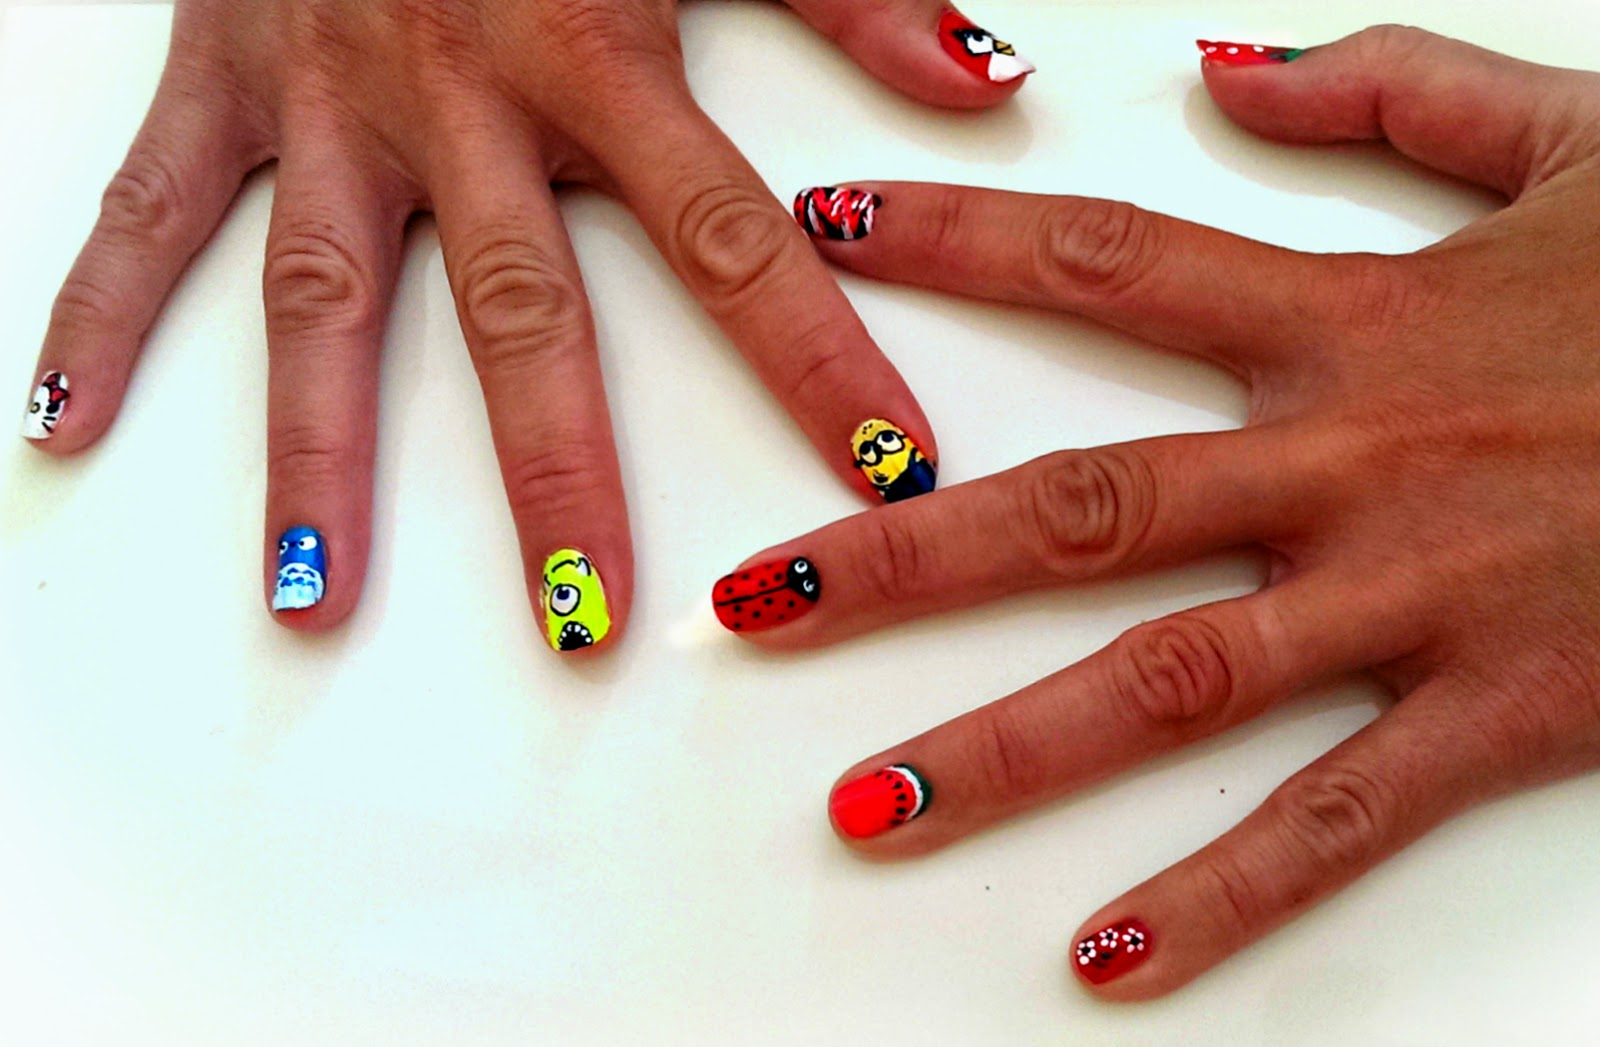 hot designs nail art ideas